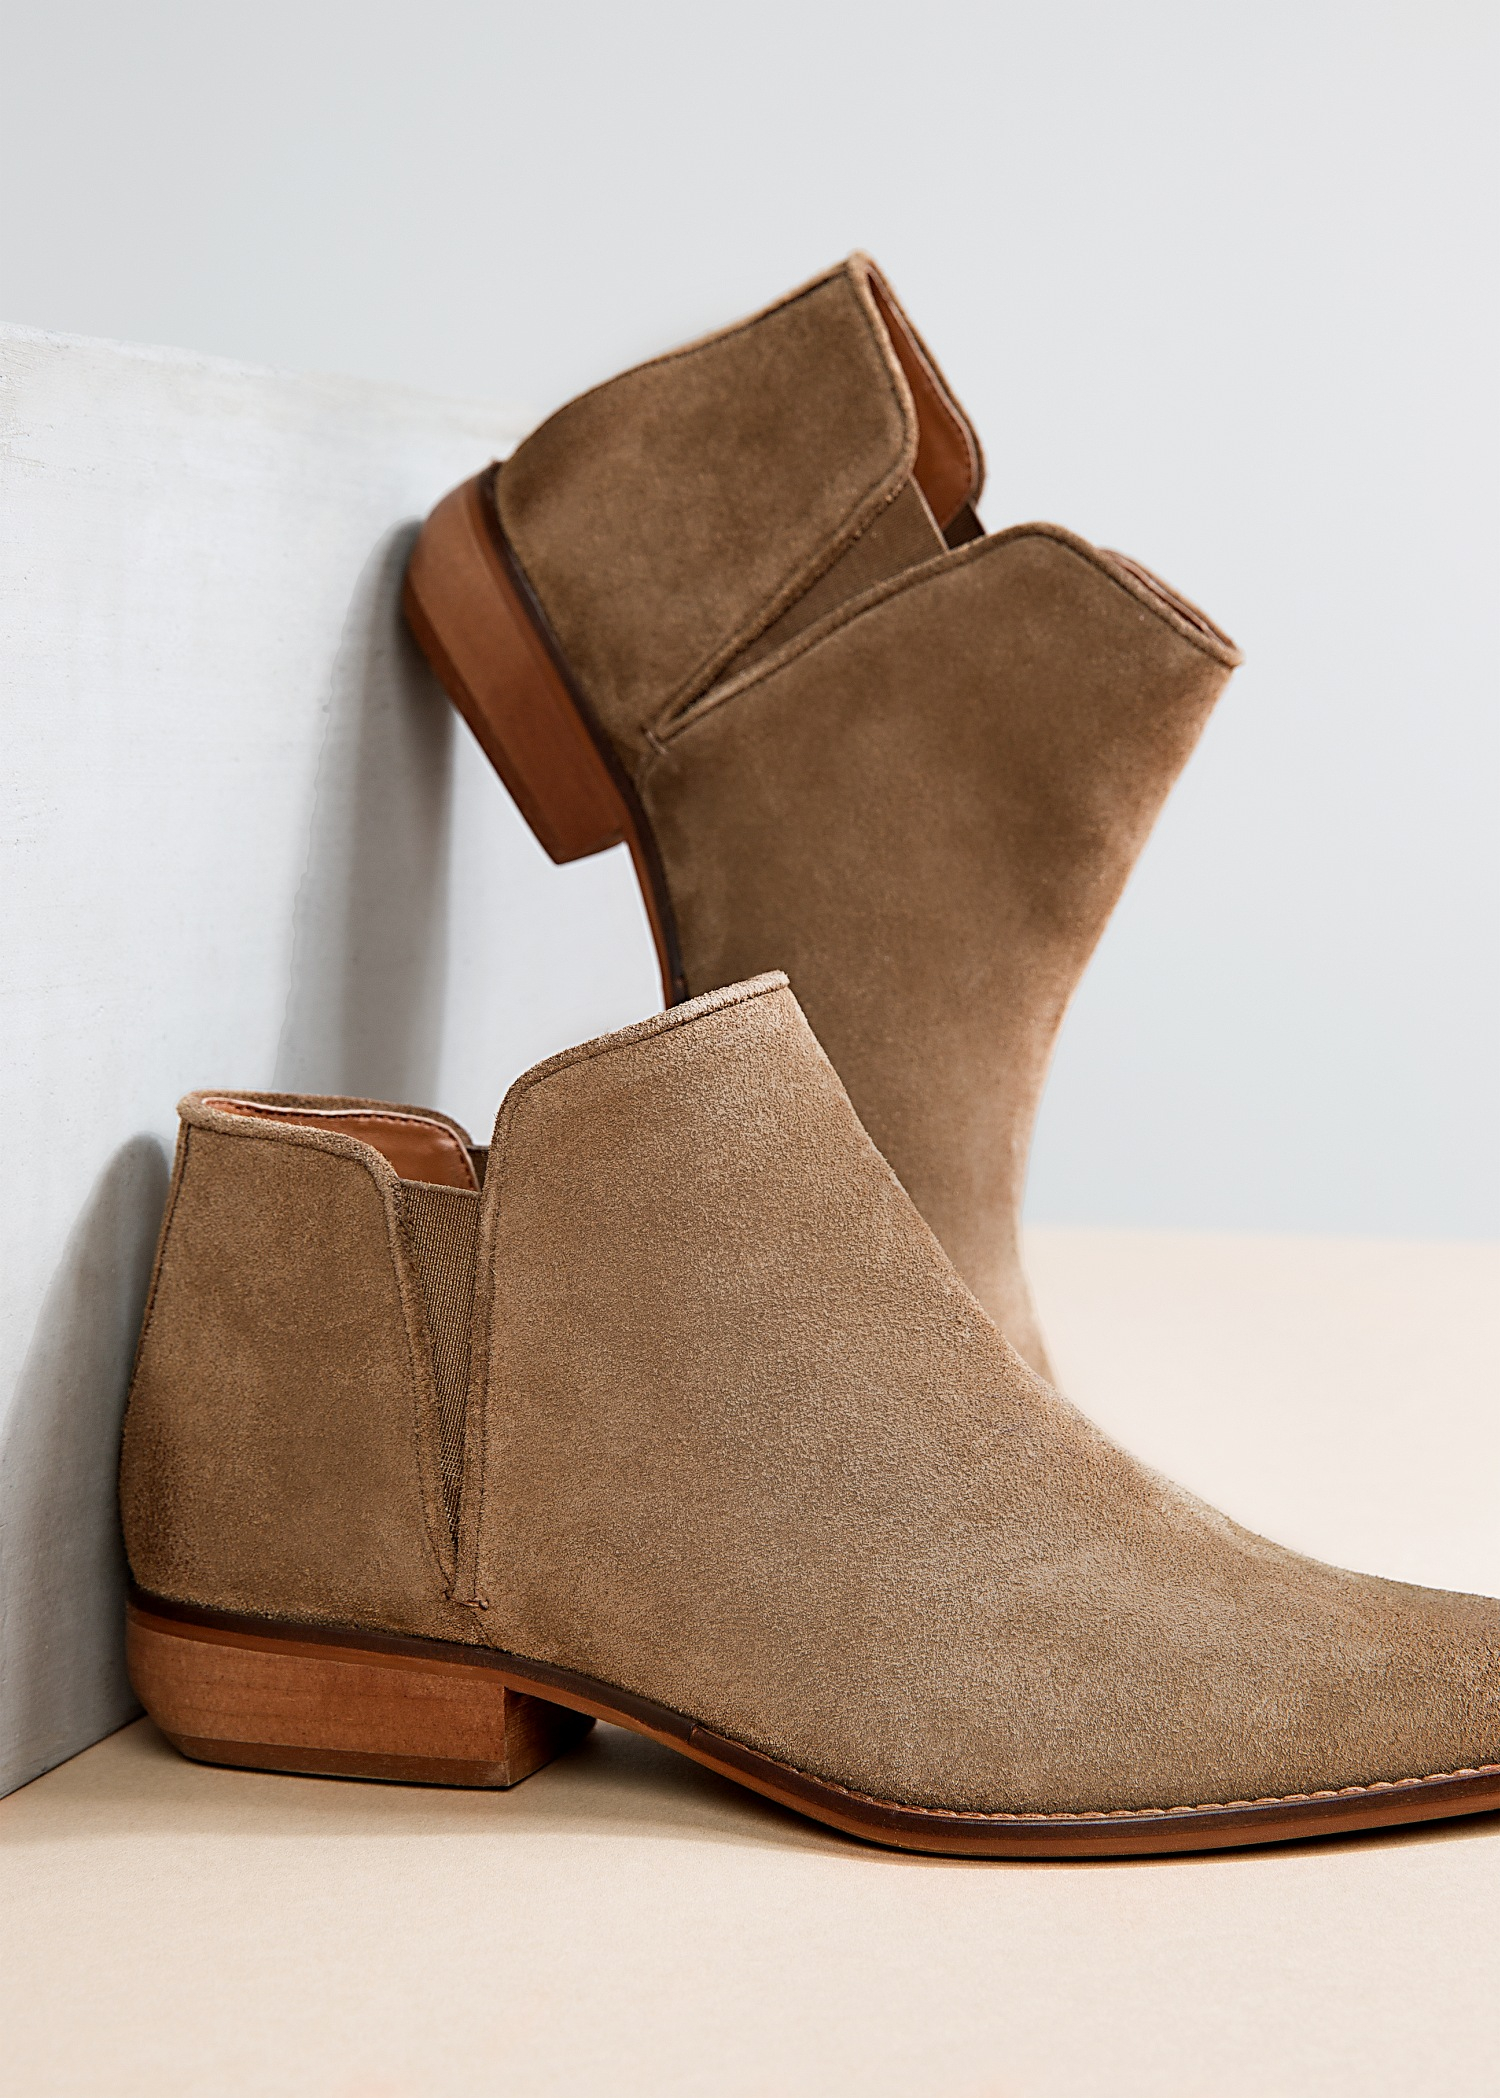 How you can make a perfect outfit by selecting appropriate suede ankle boots?